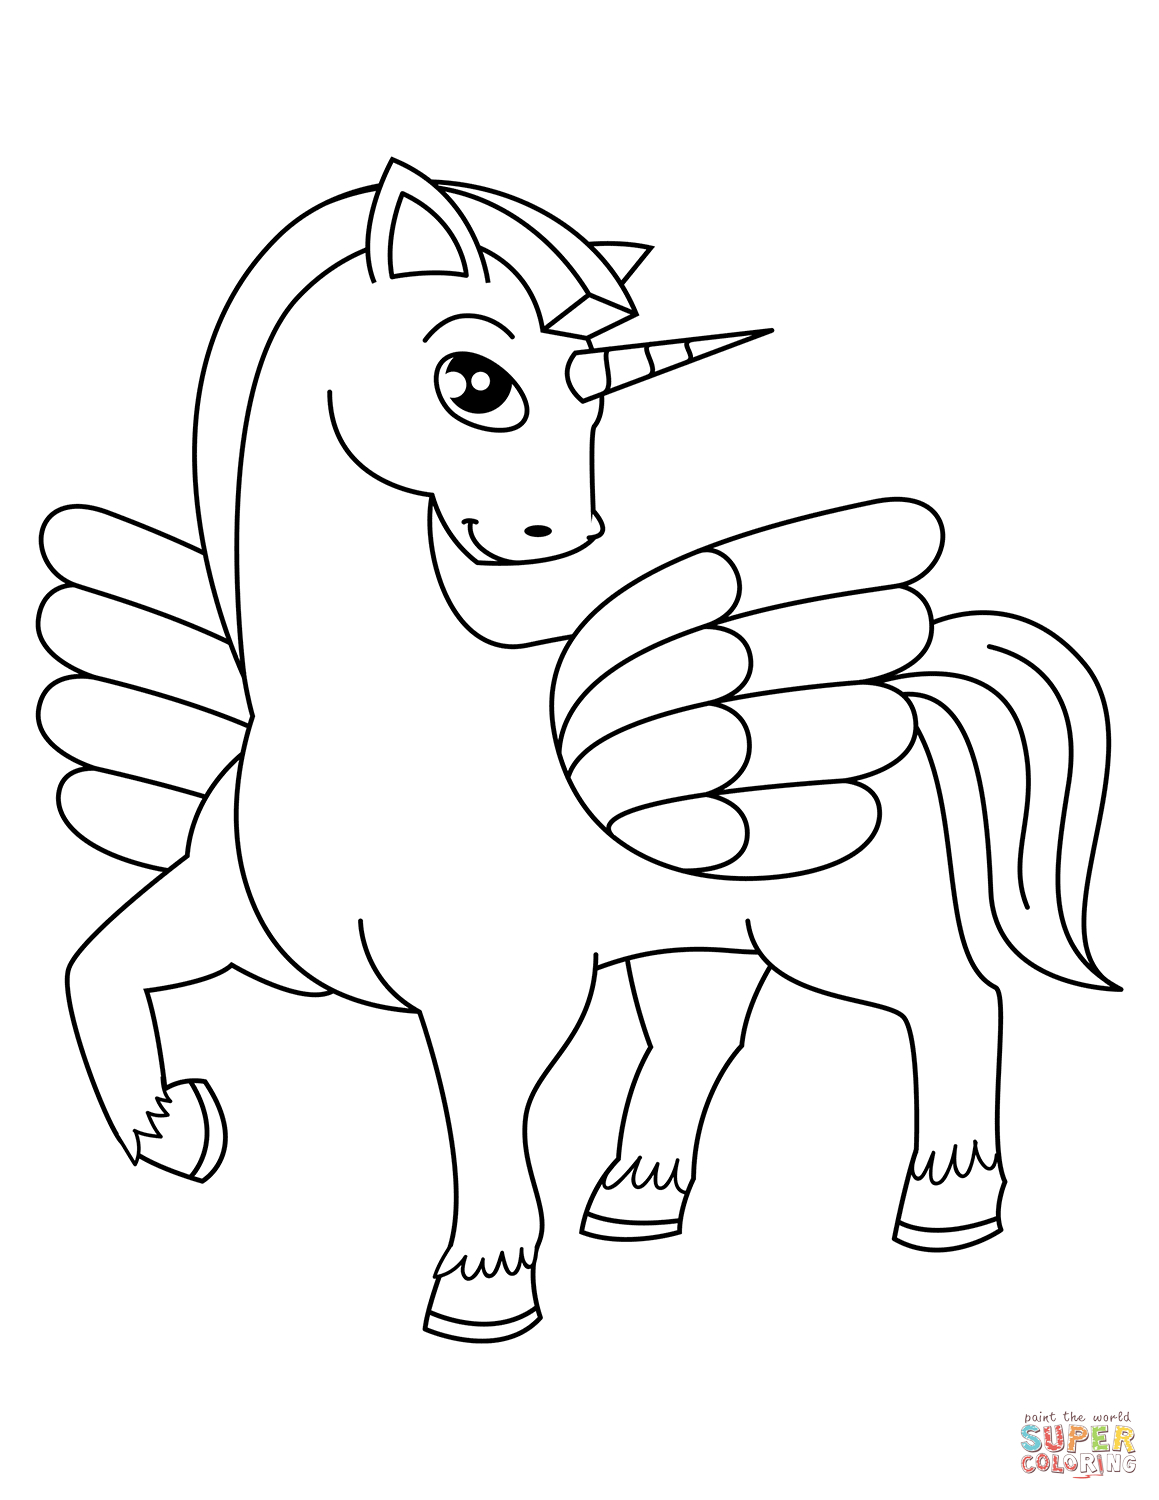 Unicorn Coloring Pages   Free Coloring Pages - Free Printable Unicorn Coloring Pages